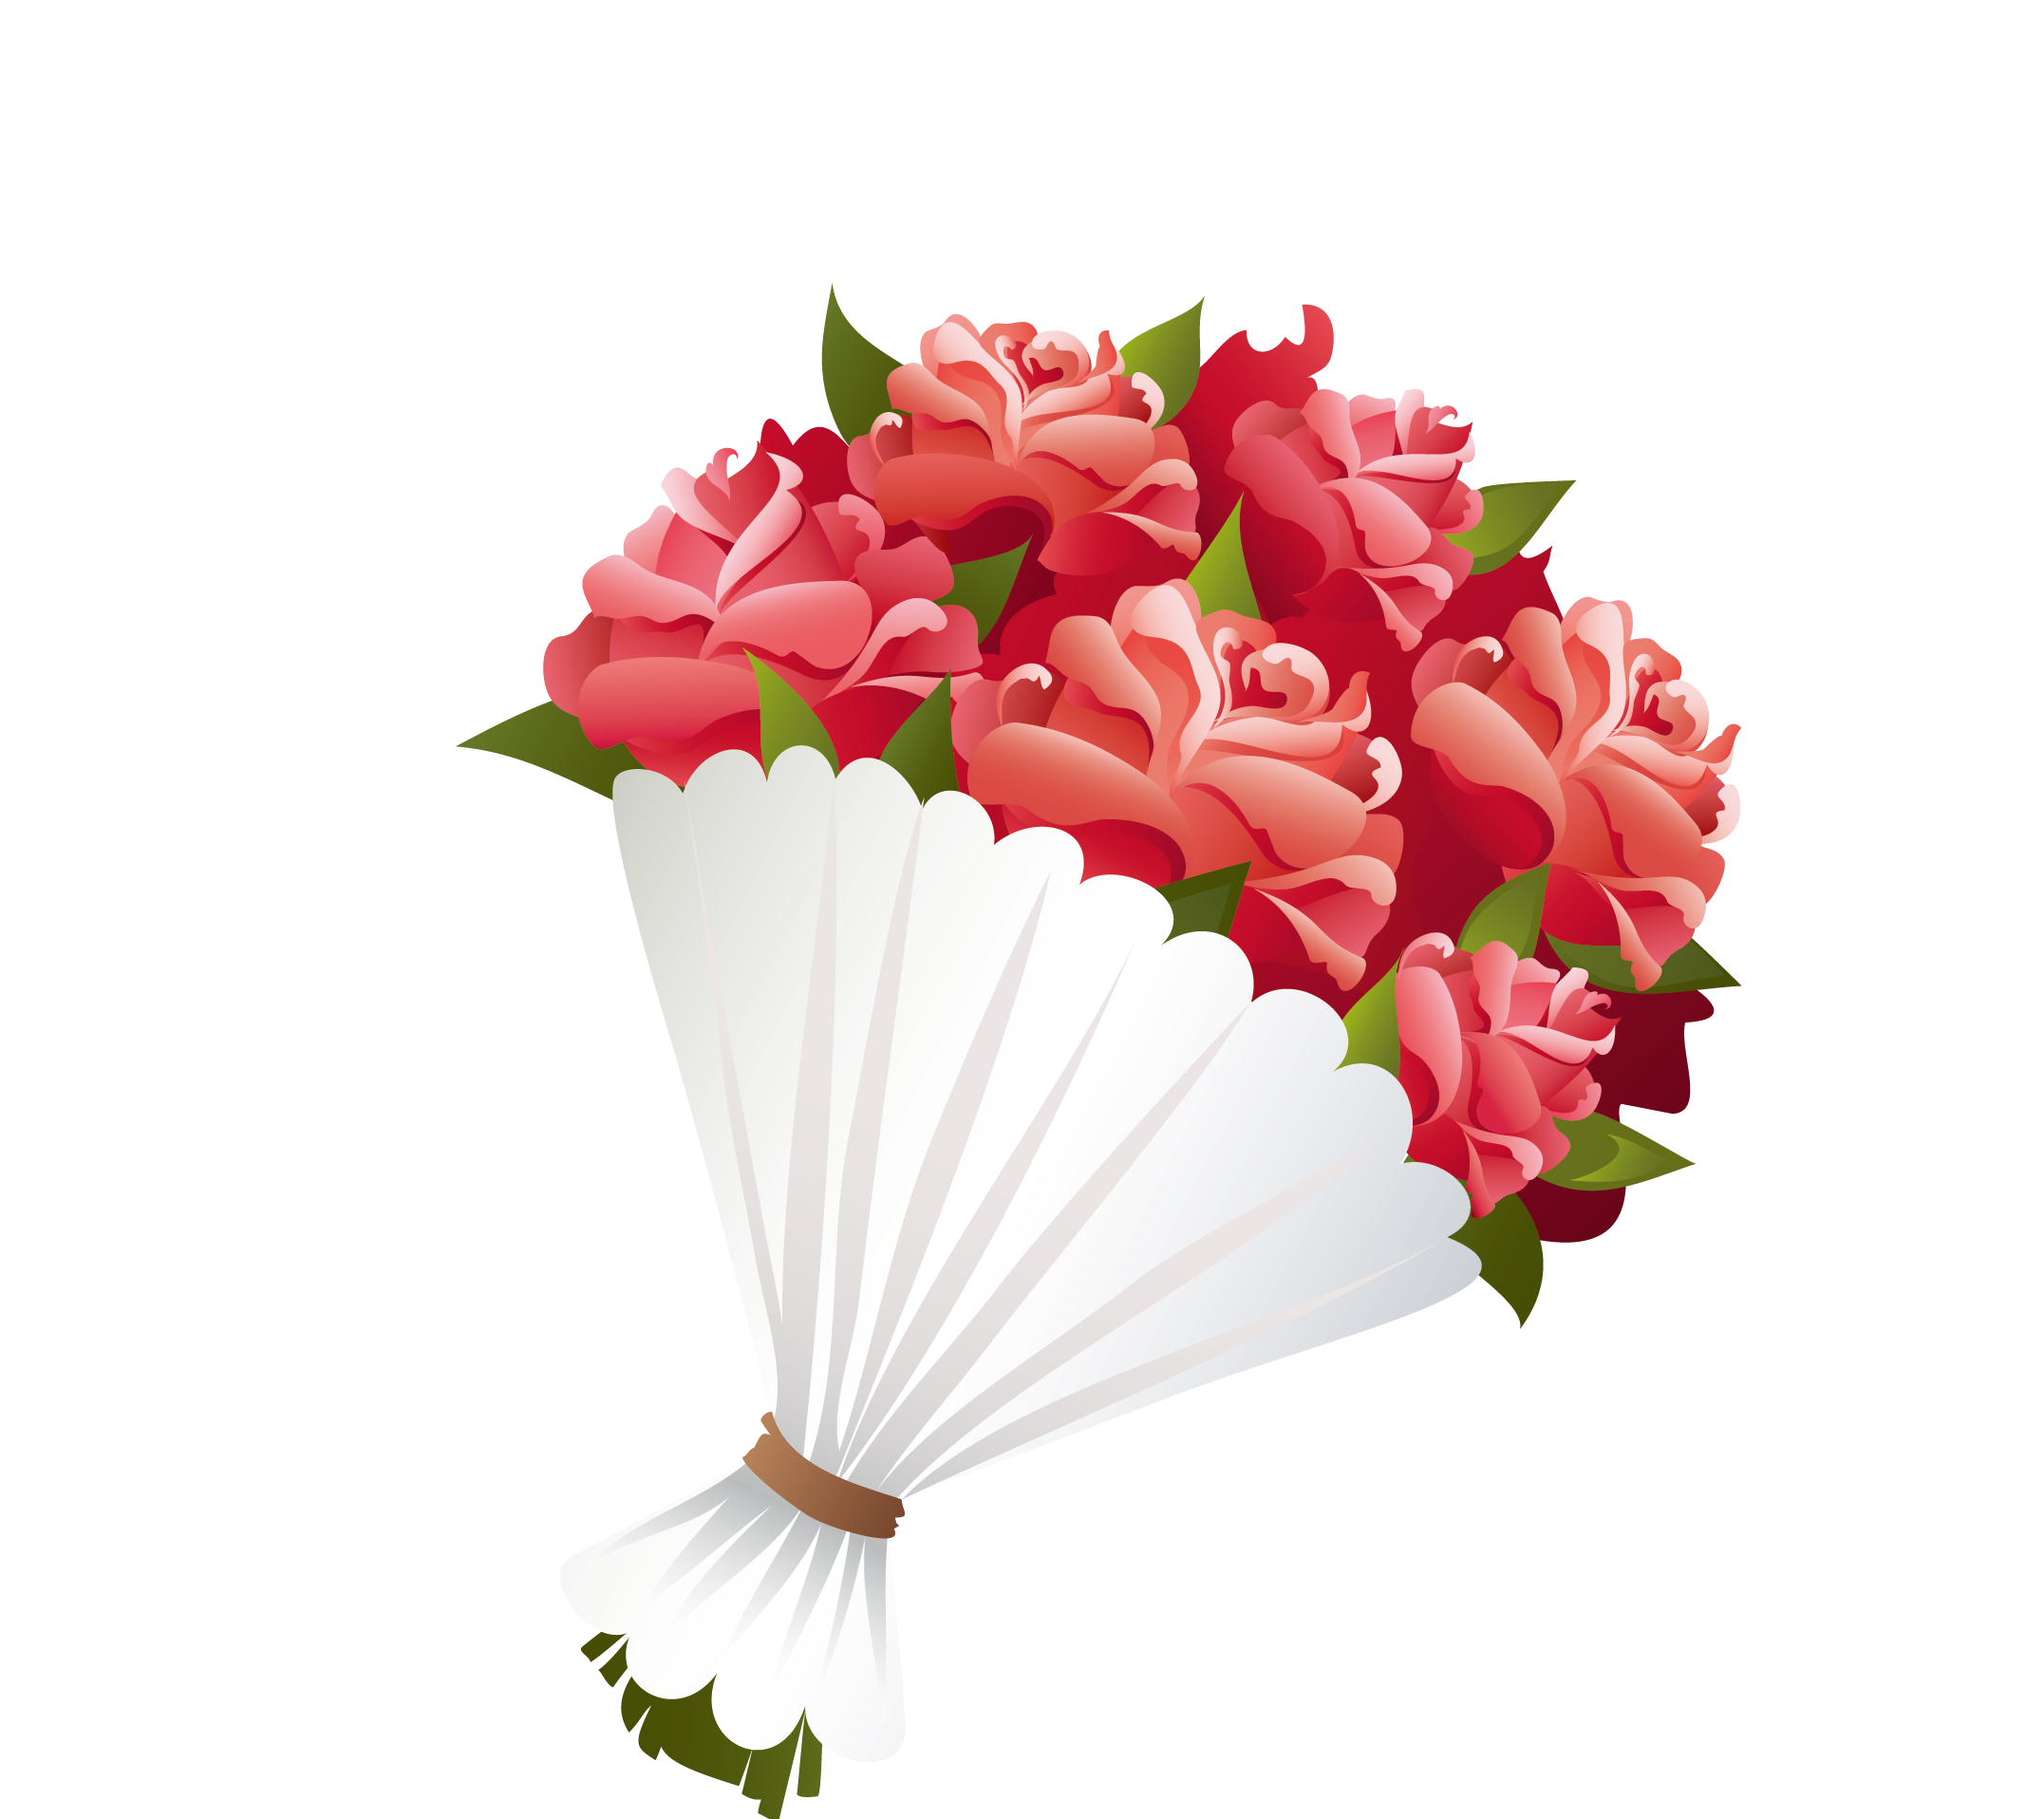 Flower bouquet clipart clip art royalty free Flower bouquet Clip art - Cartoon red valentine rose 2153*1916 ... clip art royalty free